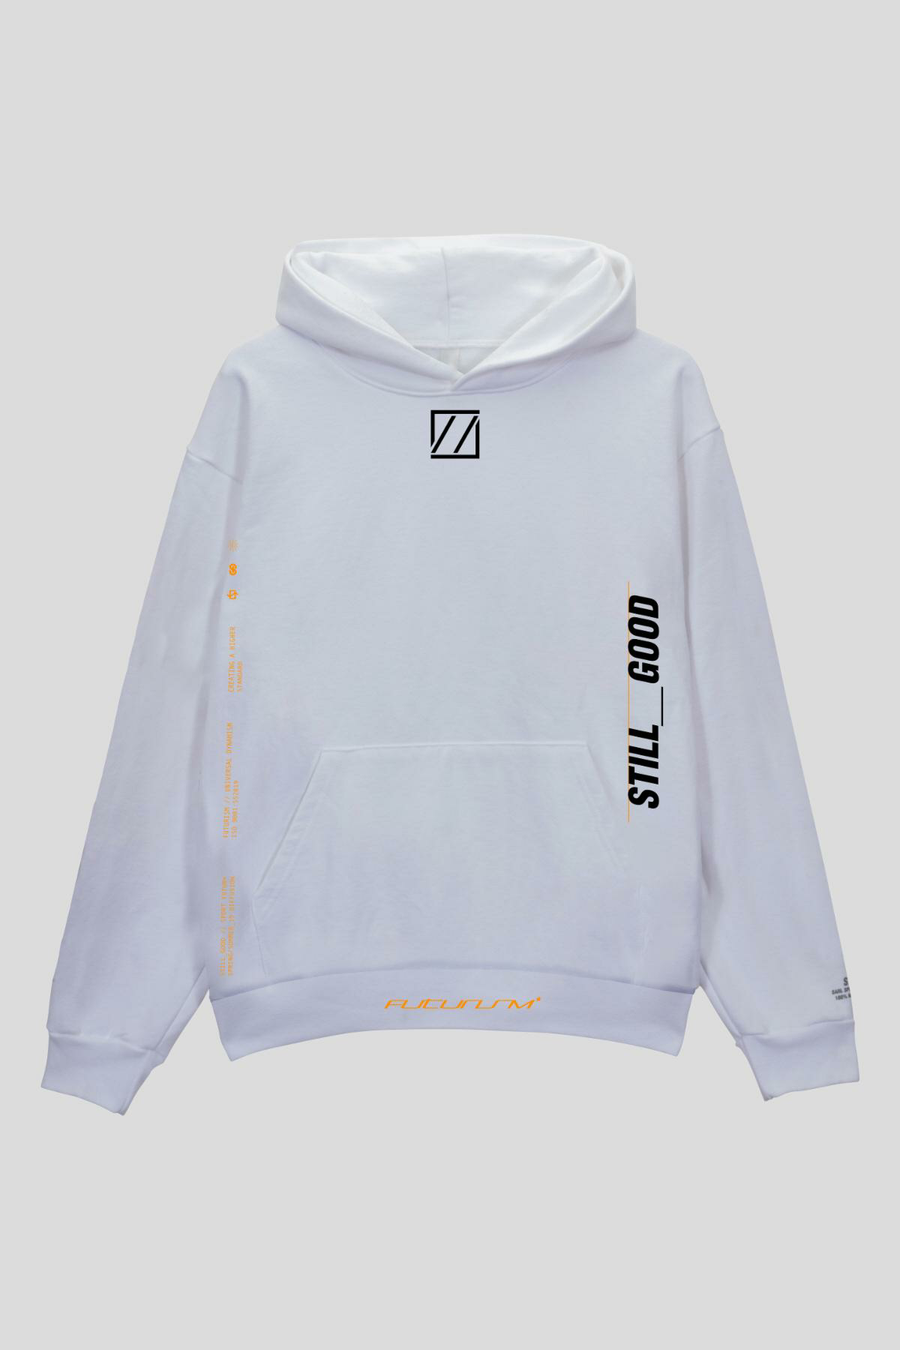 Movement Hoodie White / XS | Still Good